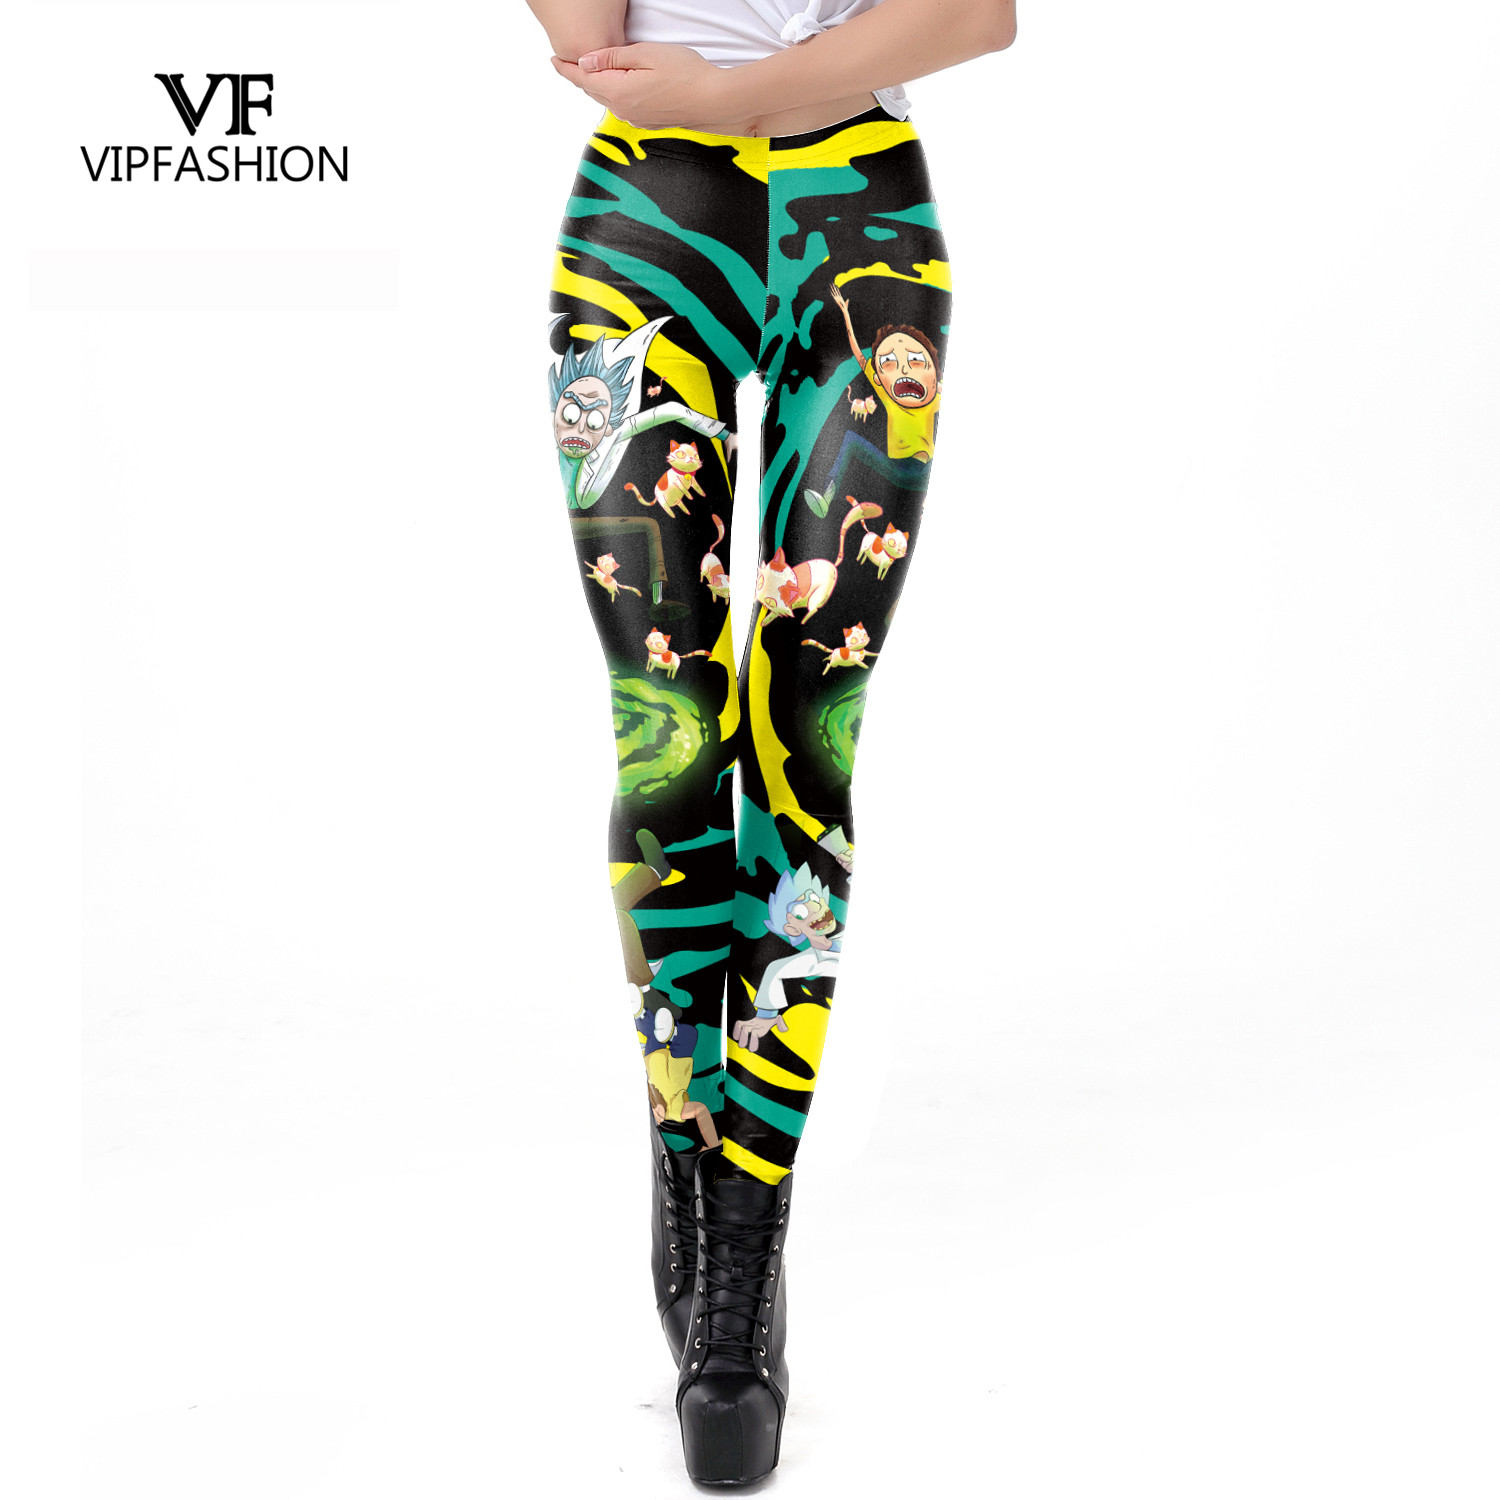 VIP FASHION Rick And Morty Lady Leggings Women Plus Size Workout Cartoon Printed Comfortable Thin Fitness Leggings